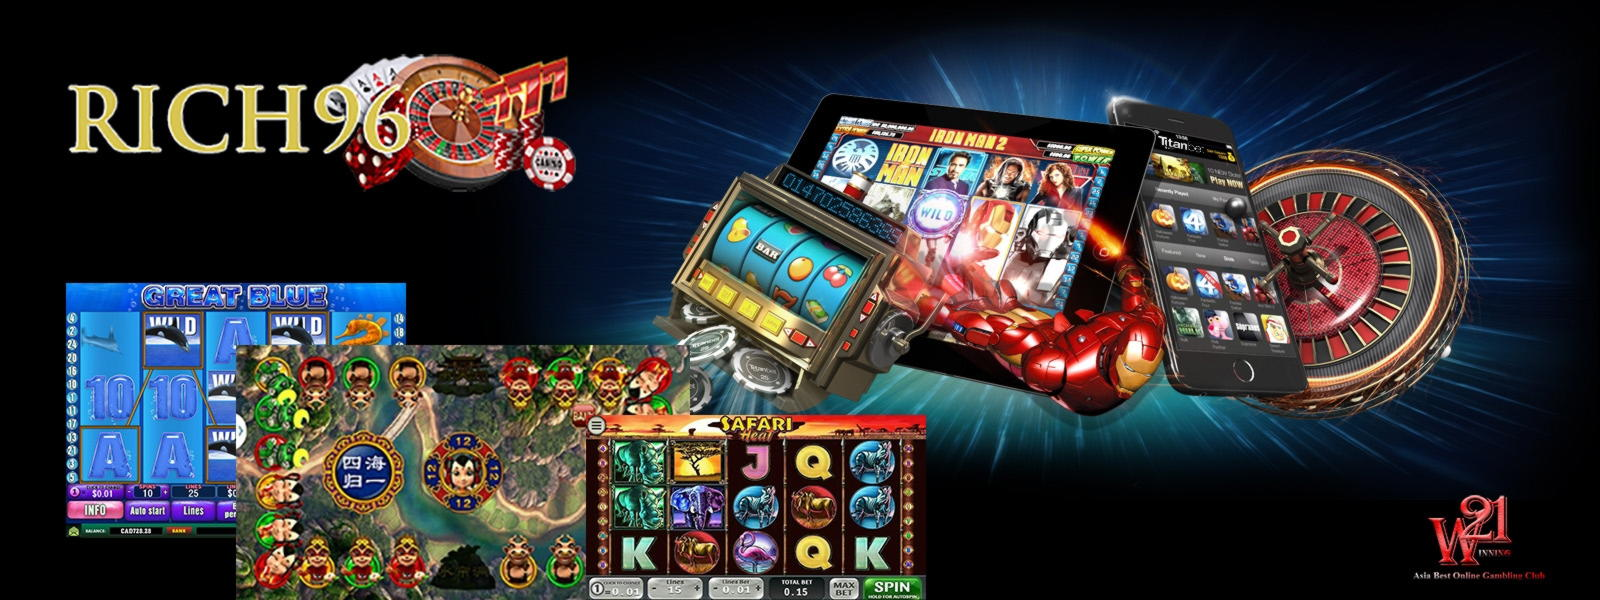 $125 Mobile freeroll slot tournament at Party Casino